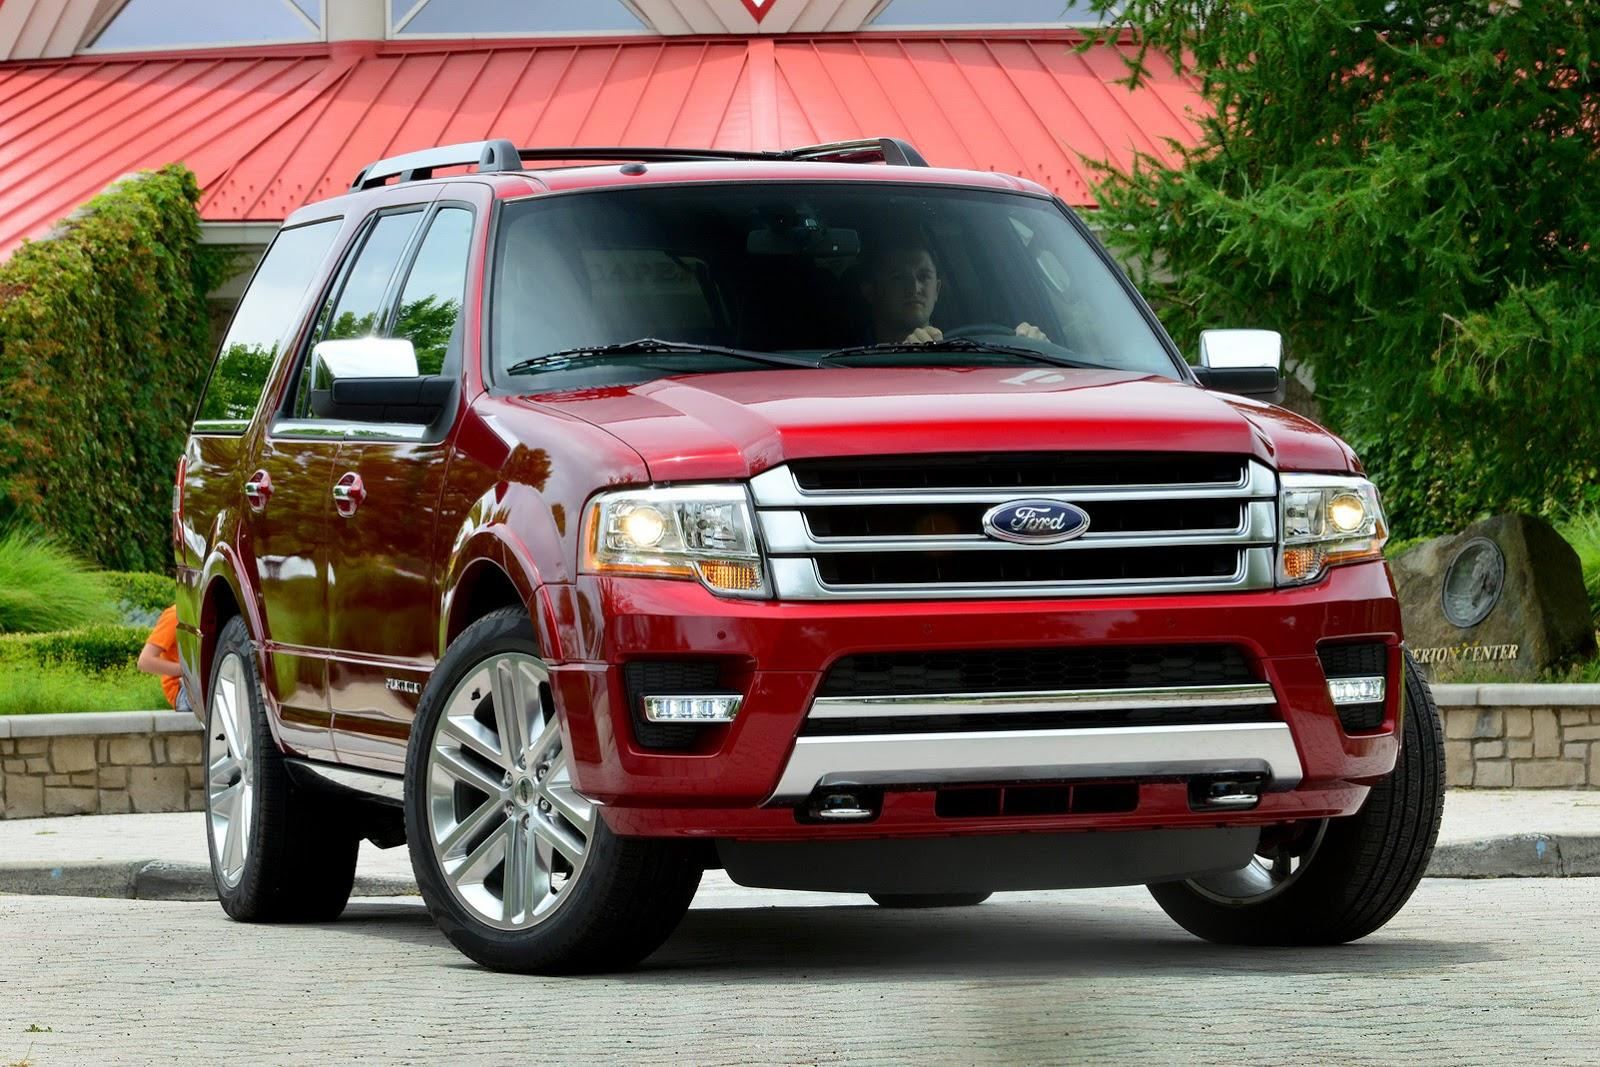 Ford Expedition photo 125307